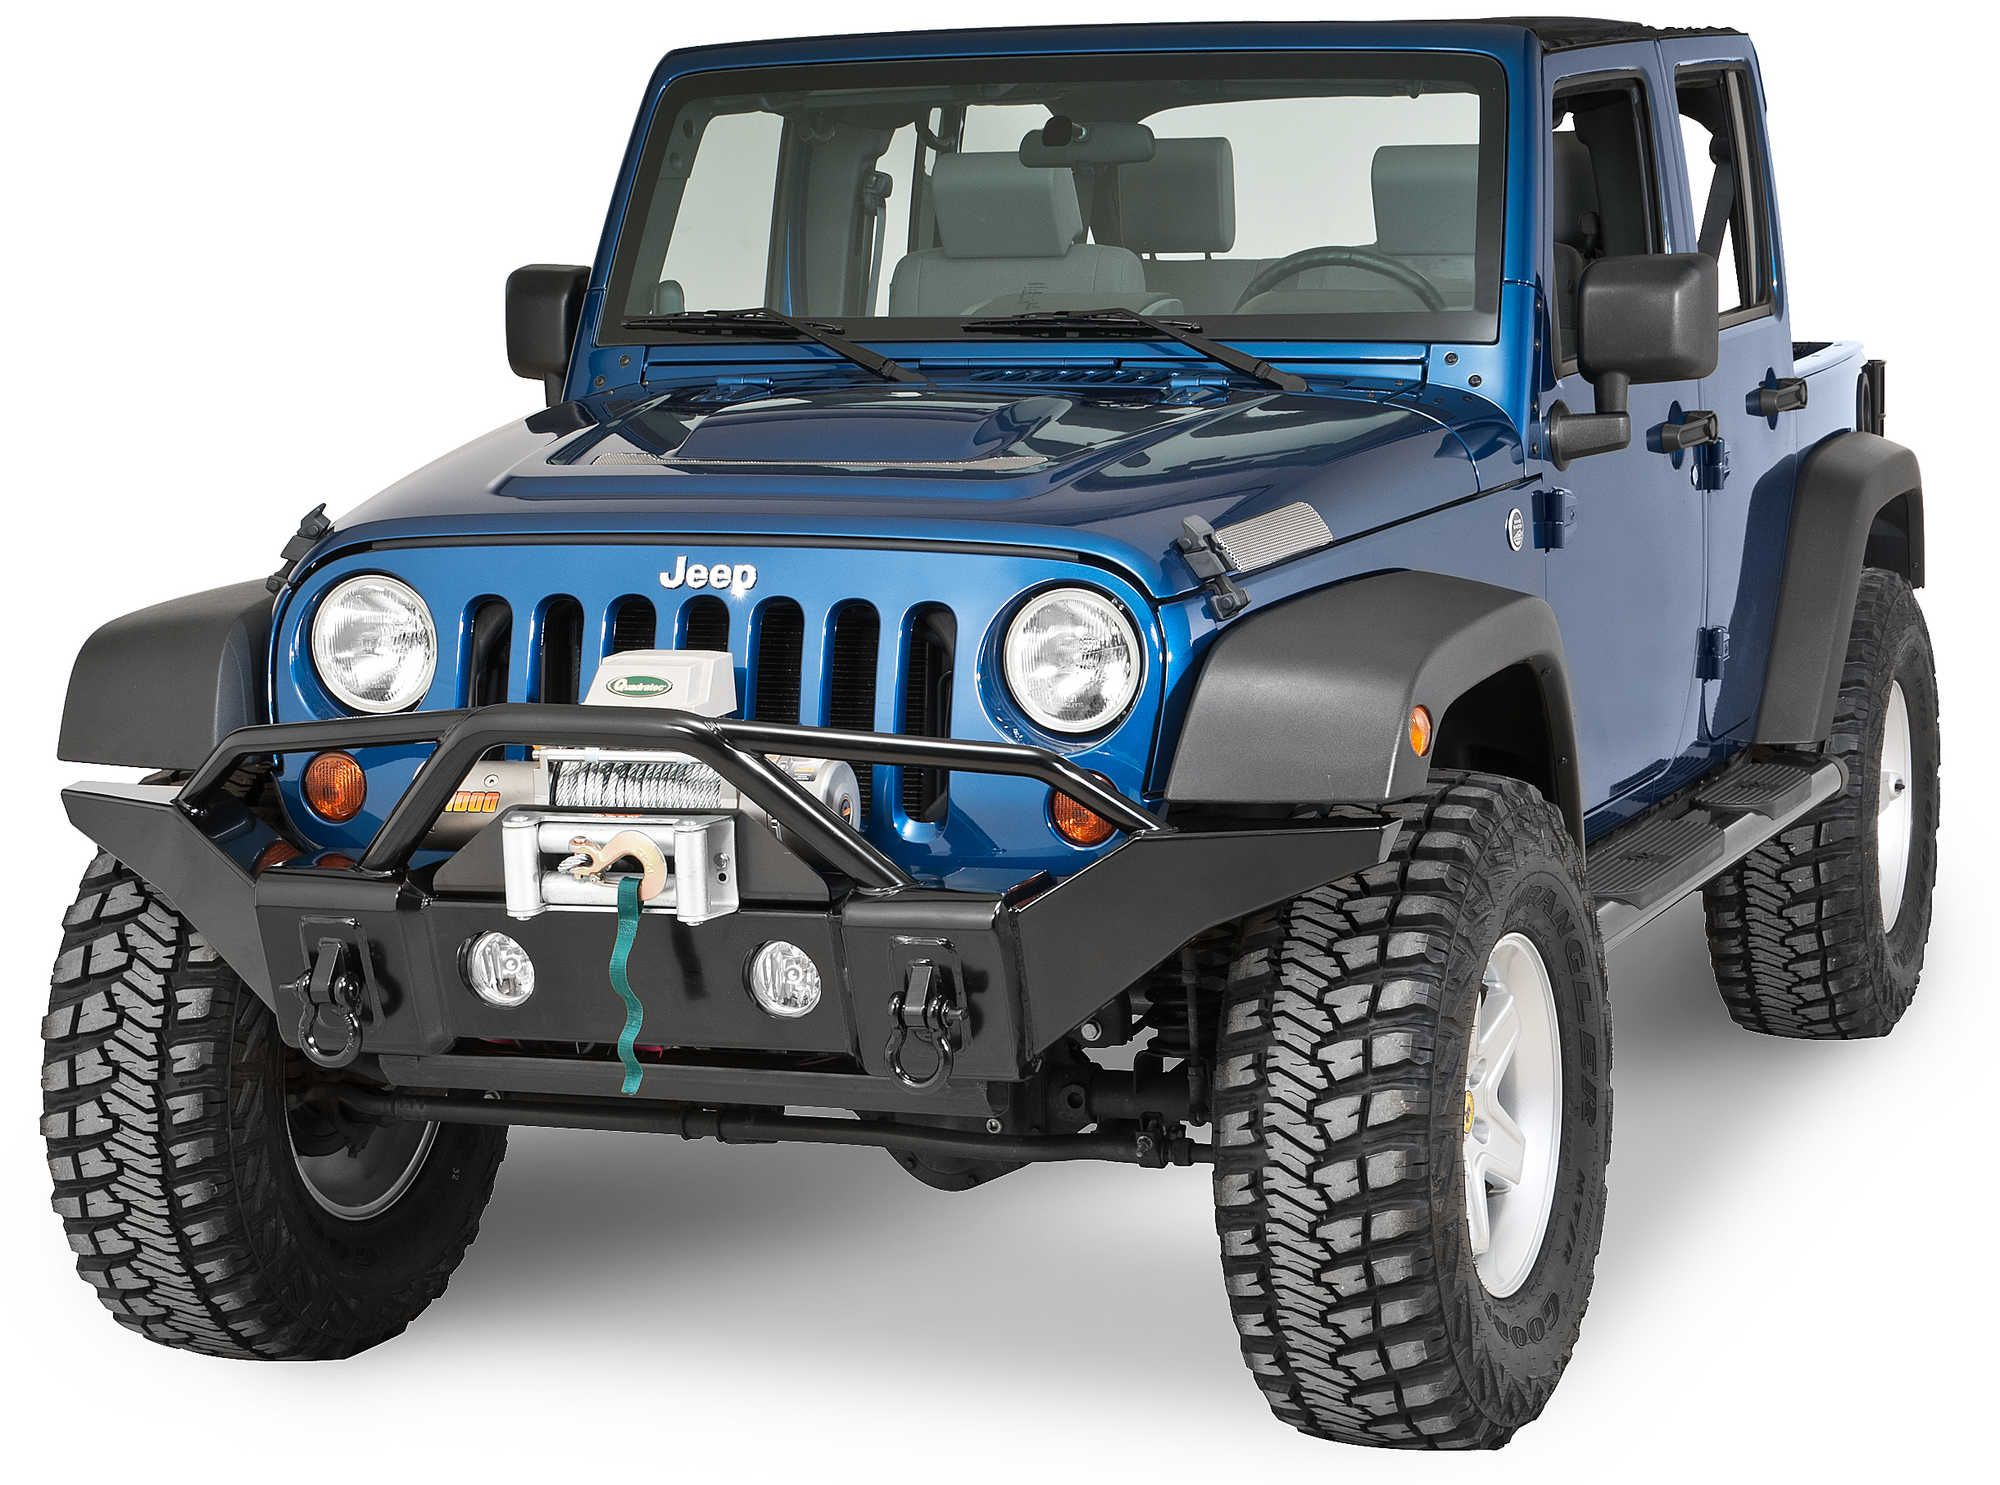 d37fc4c4f25f891967d6e0c3fb460183 Take A Look About Jeep Dog Accessories with Captivating Gallery Cars Review